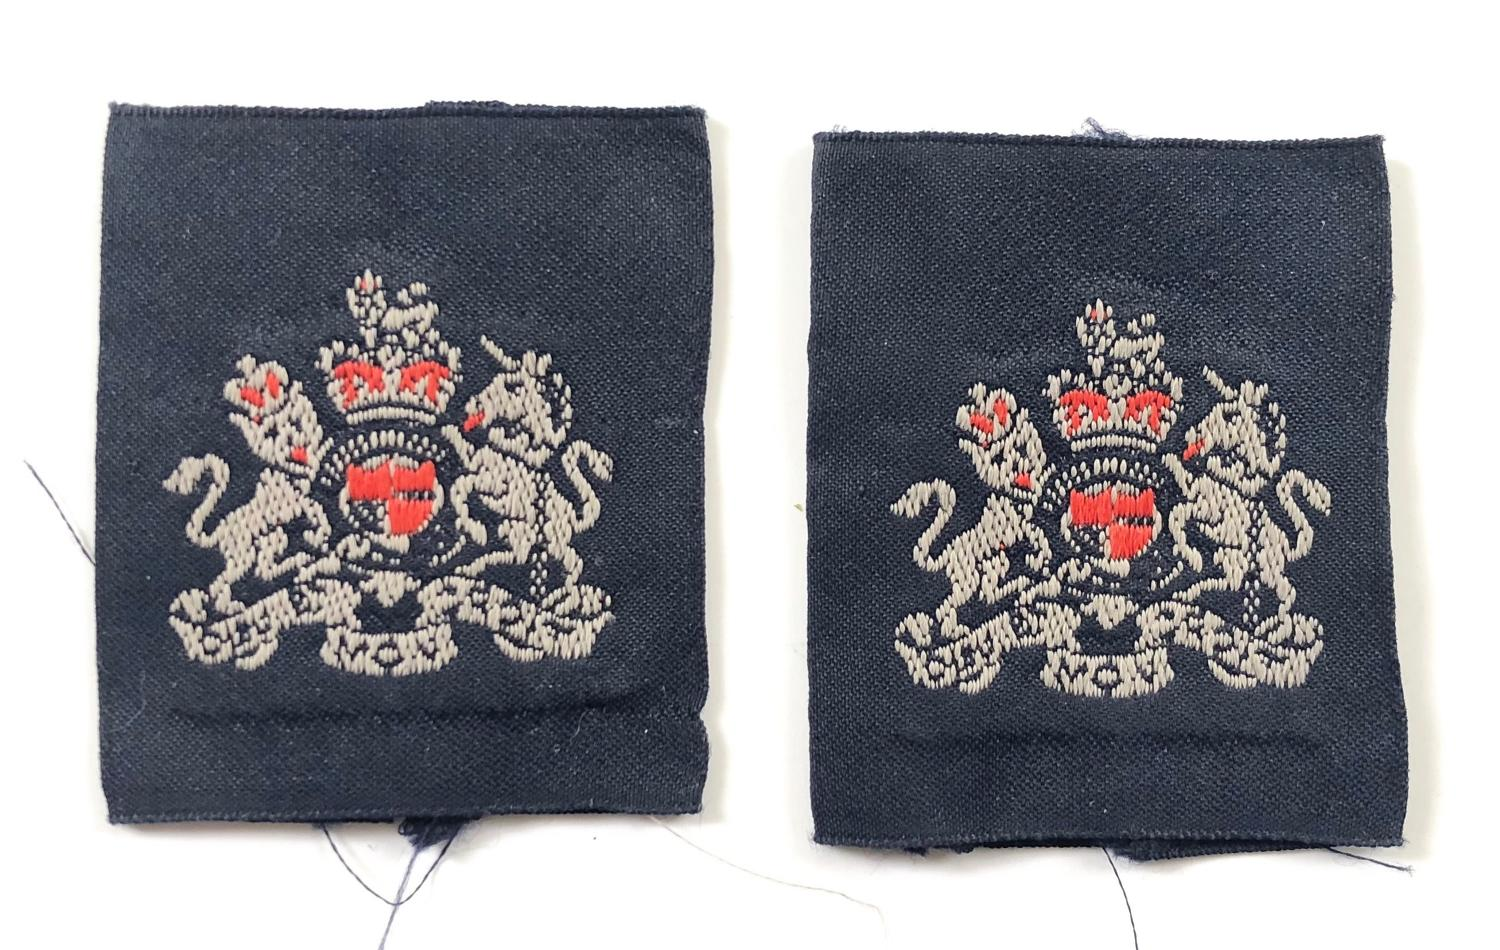 RAF Elizabeth II Period Warrant Officer Rank Slides Badges.